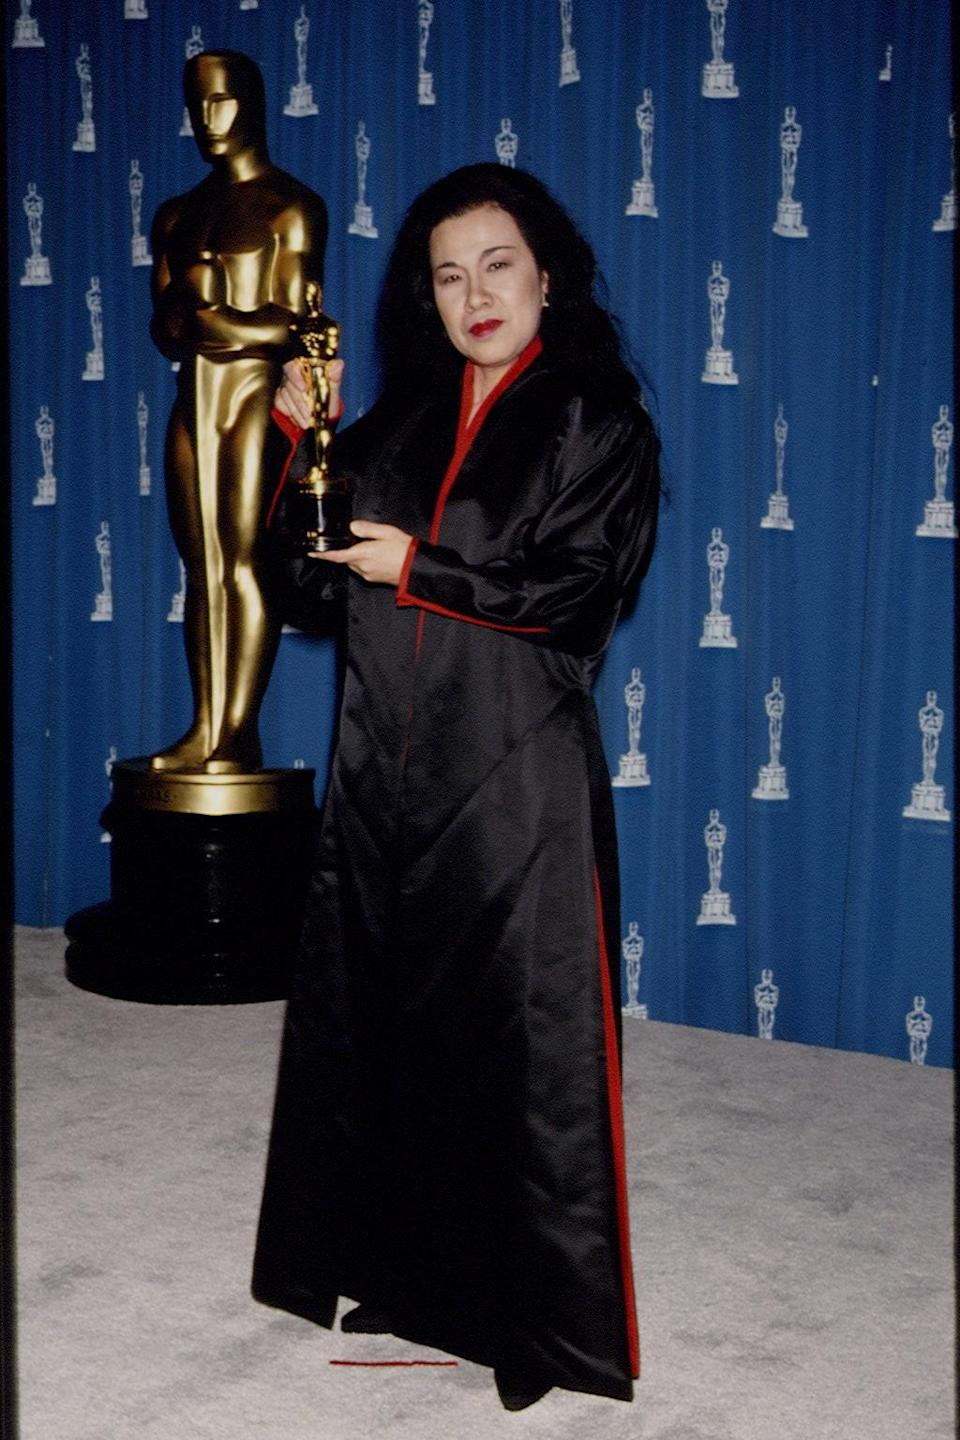 Nominated for best costume design for <em>Bram Stoker's Dracula</em> in 1993, the late Japanese costume designer's own outfit paid homage to the film (she won that night, too). Her black and red silk robe-dress mimicked the feel of Dracula's infamous red cape, but still read as elegant and appropriate for the Oscars evening dress code.